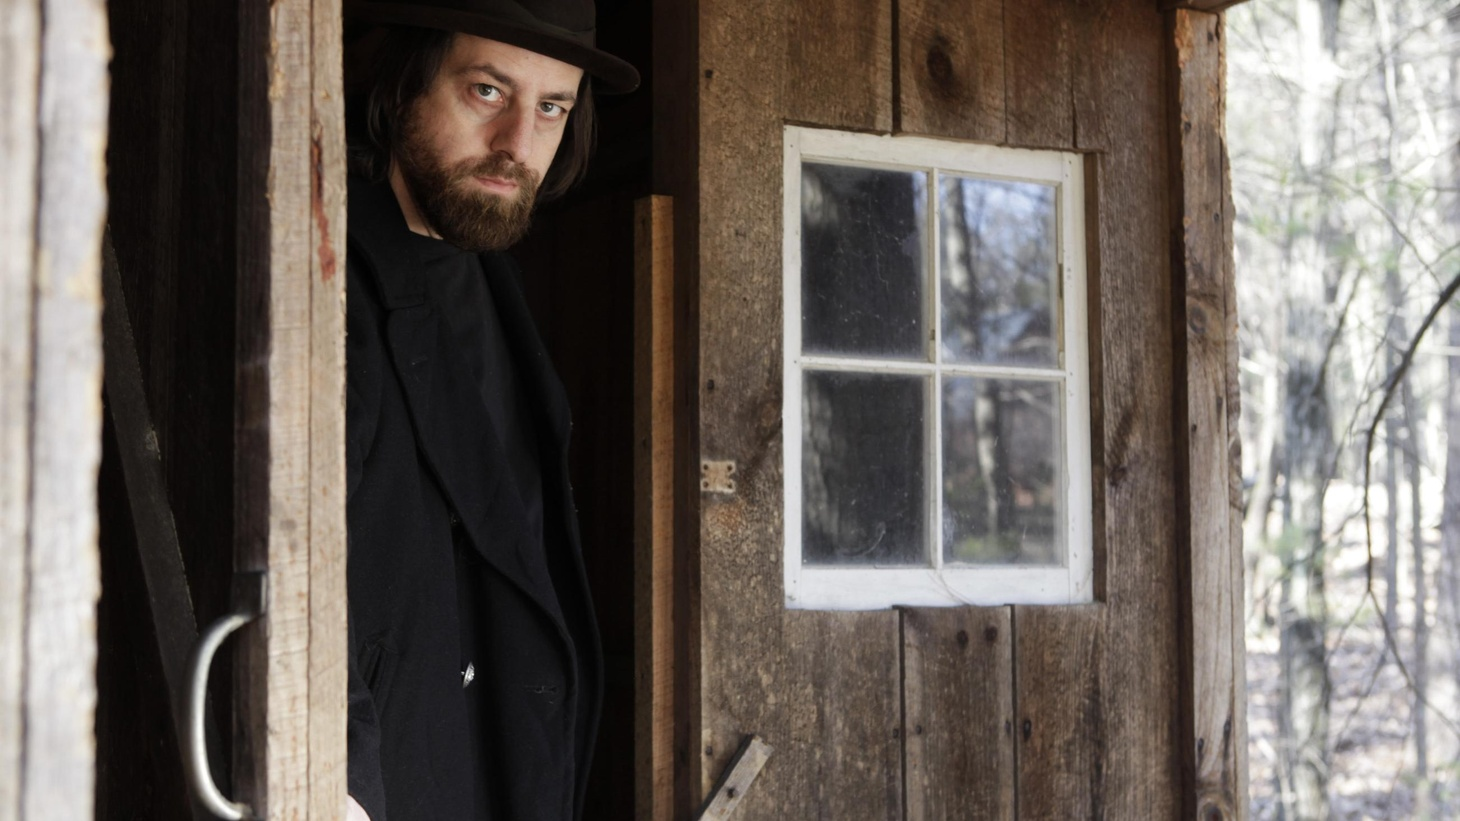 Sean Rowe's songs cast a hypnotic spell via his golden baritone. His sophomore release is filled with beautiful soulful lyrics. But Today's Top Tune stands out for...